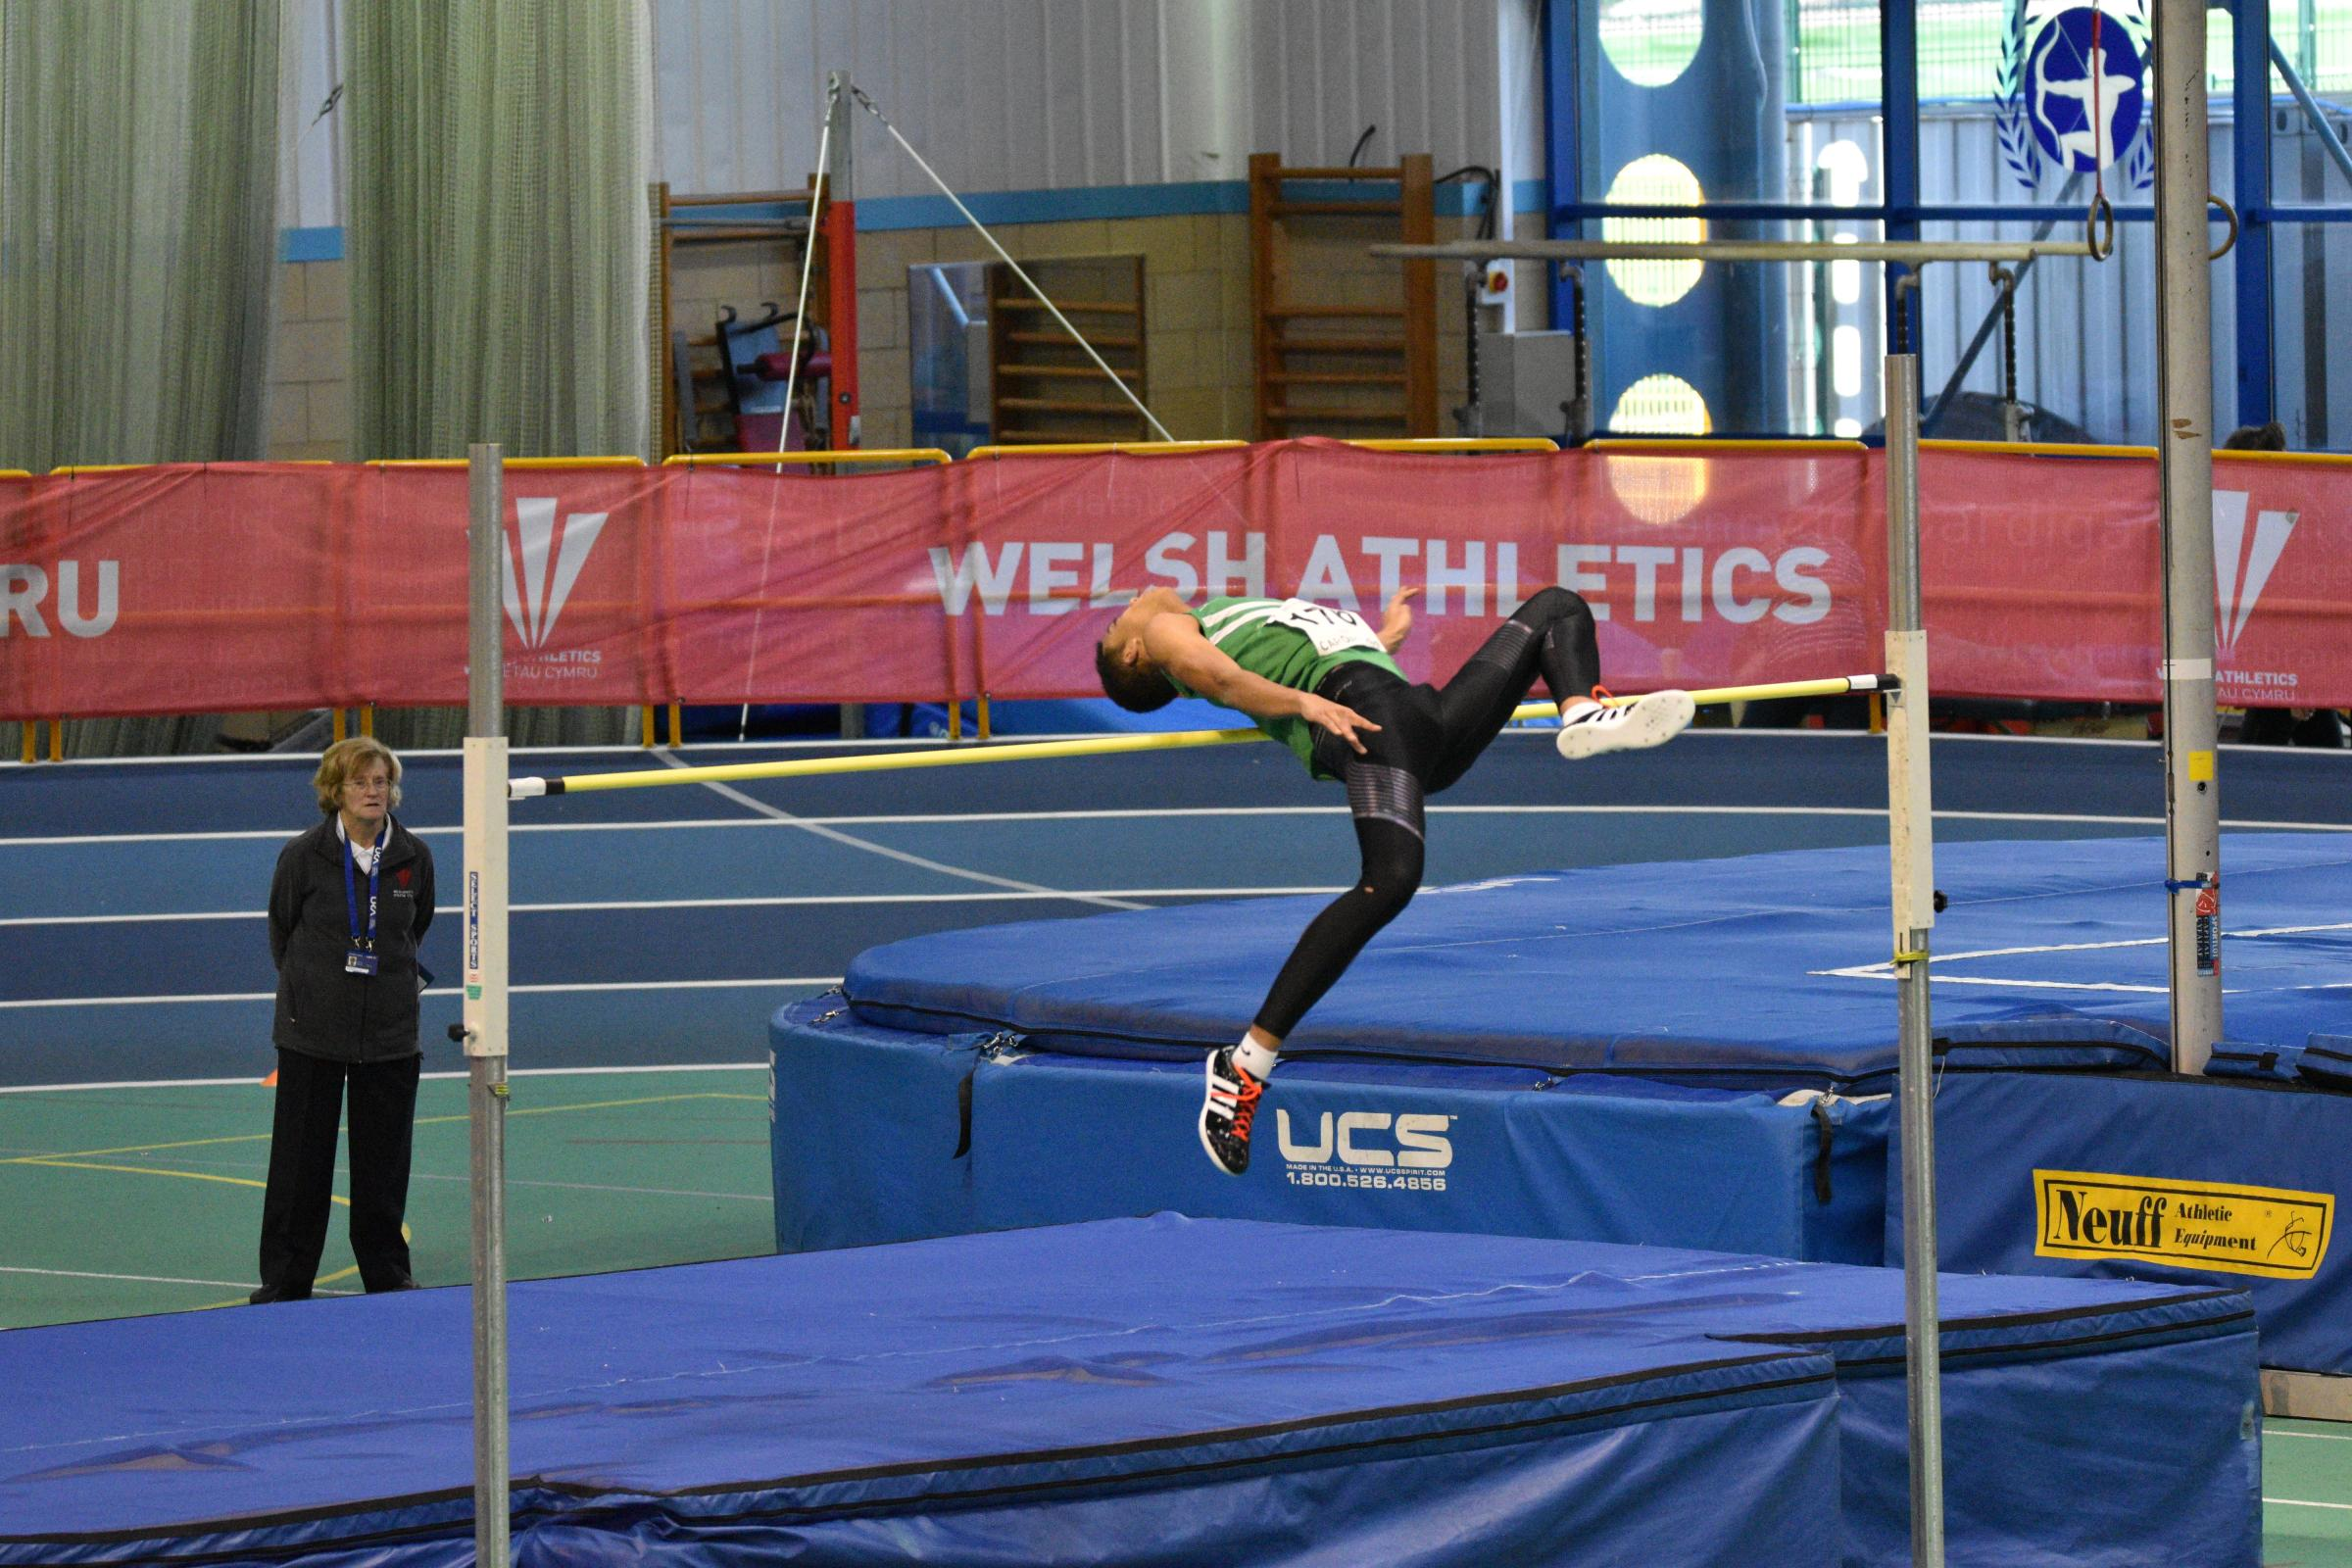 Tom Gale setting his personal best at the Wales Indoor Championships.